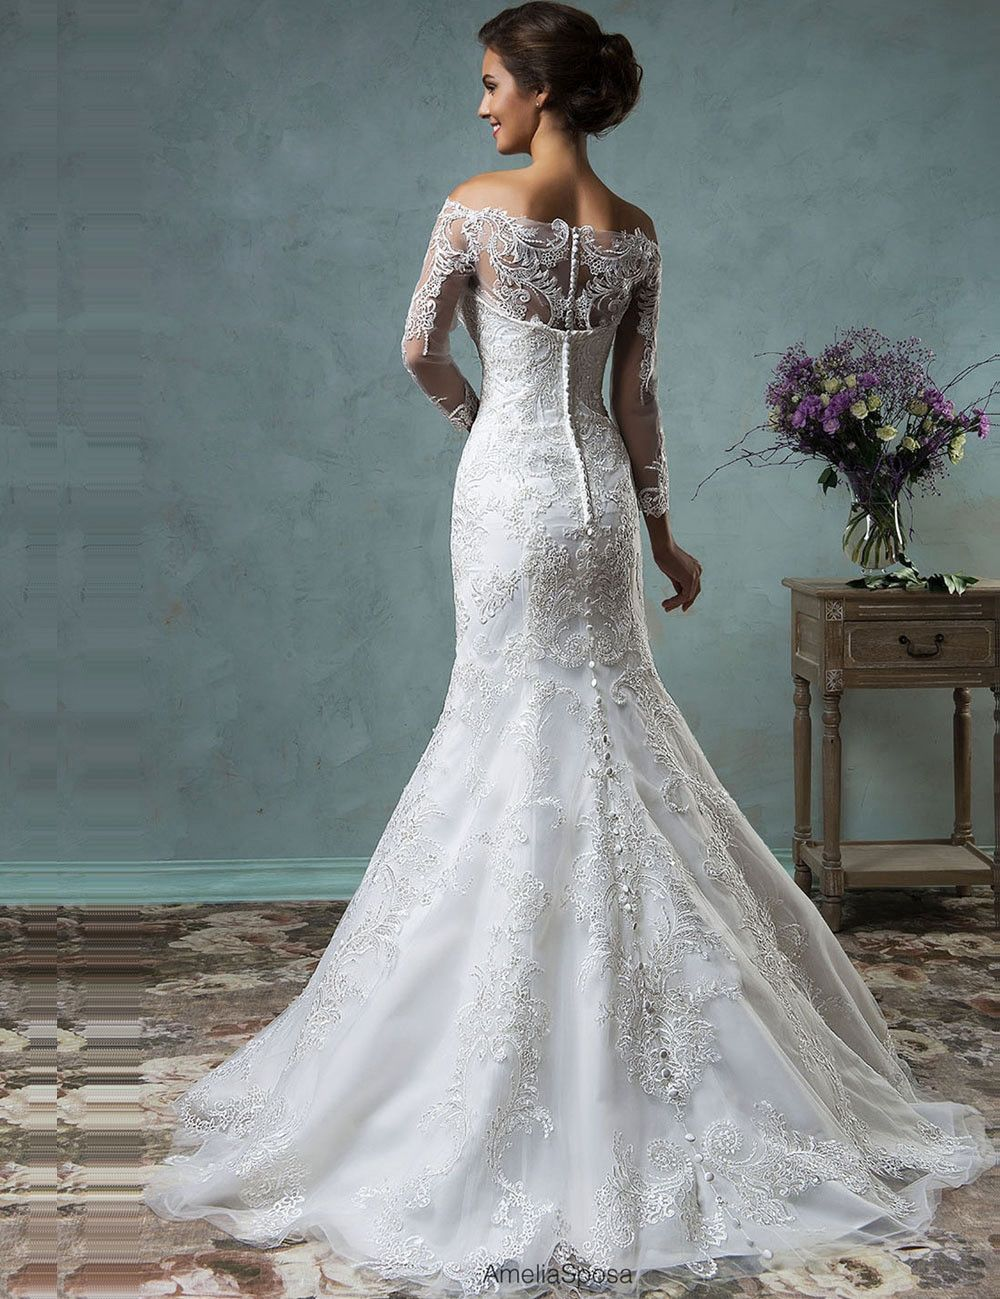 The best of both worlds a gorgeous mermaid style gown with lace